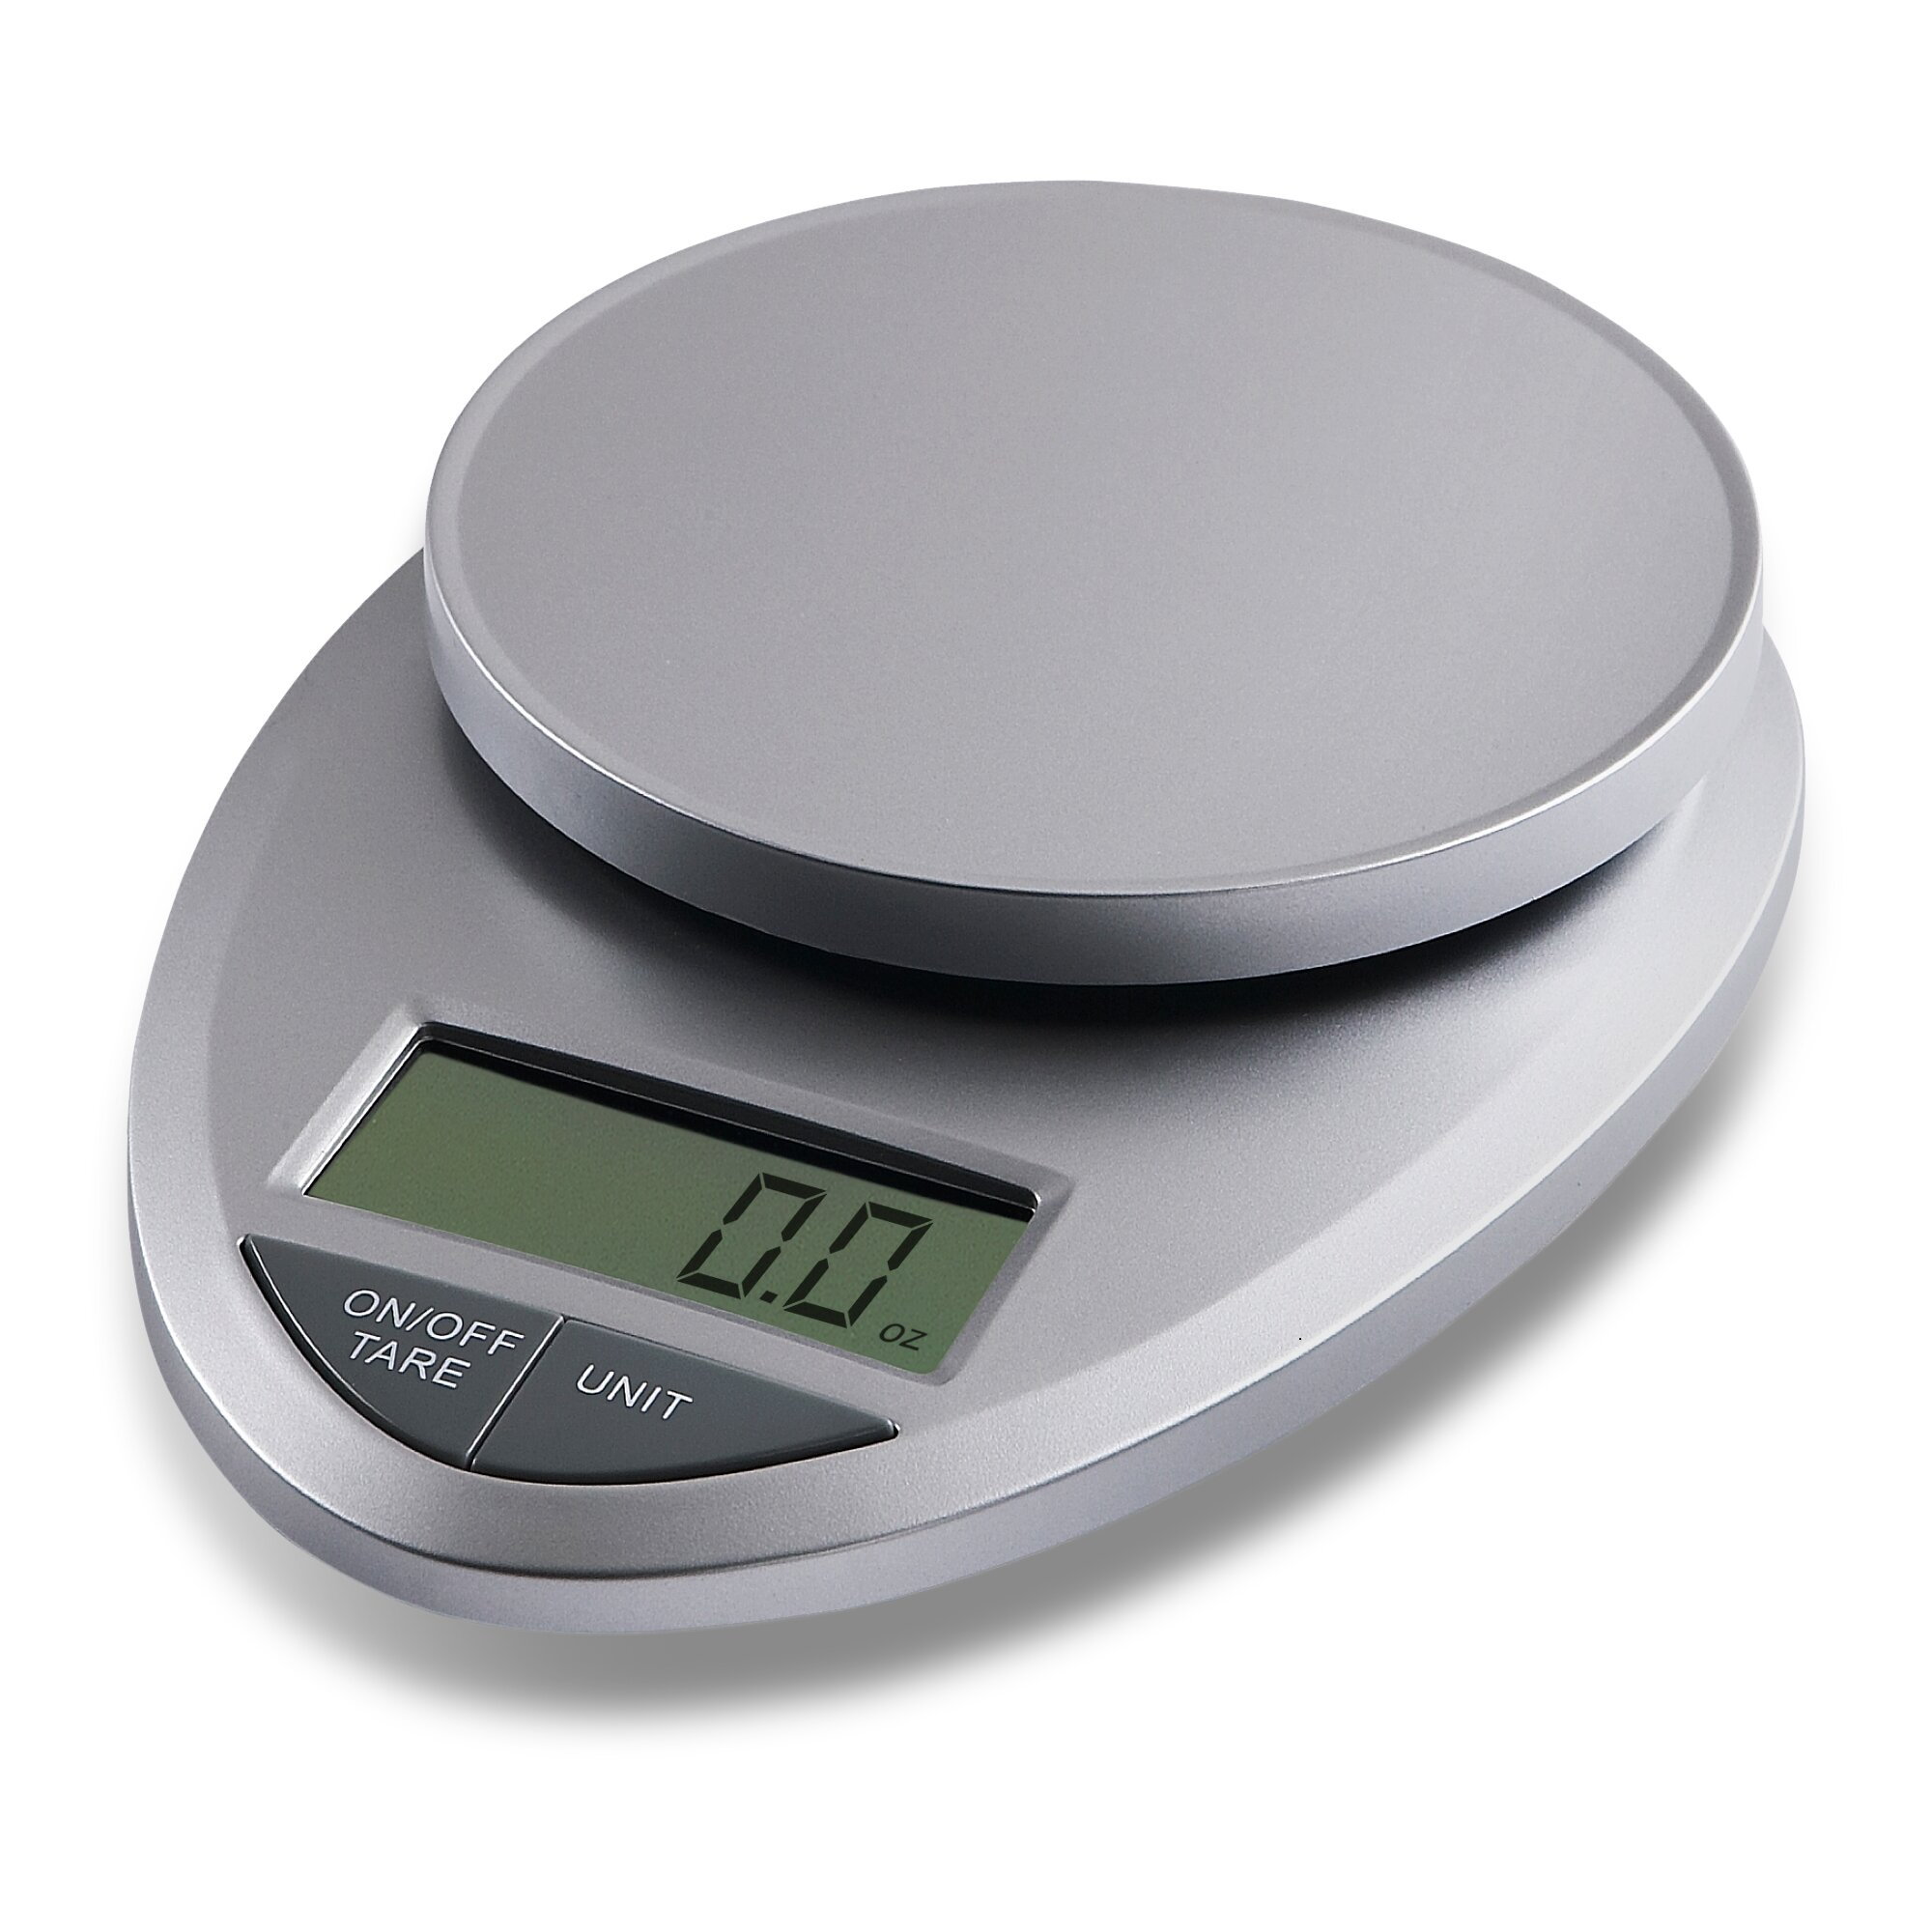 EatSmart Precision Pro Digital Kitchen Scale In Silver